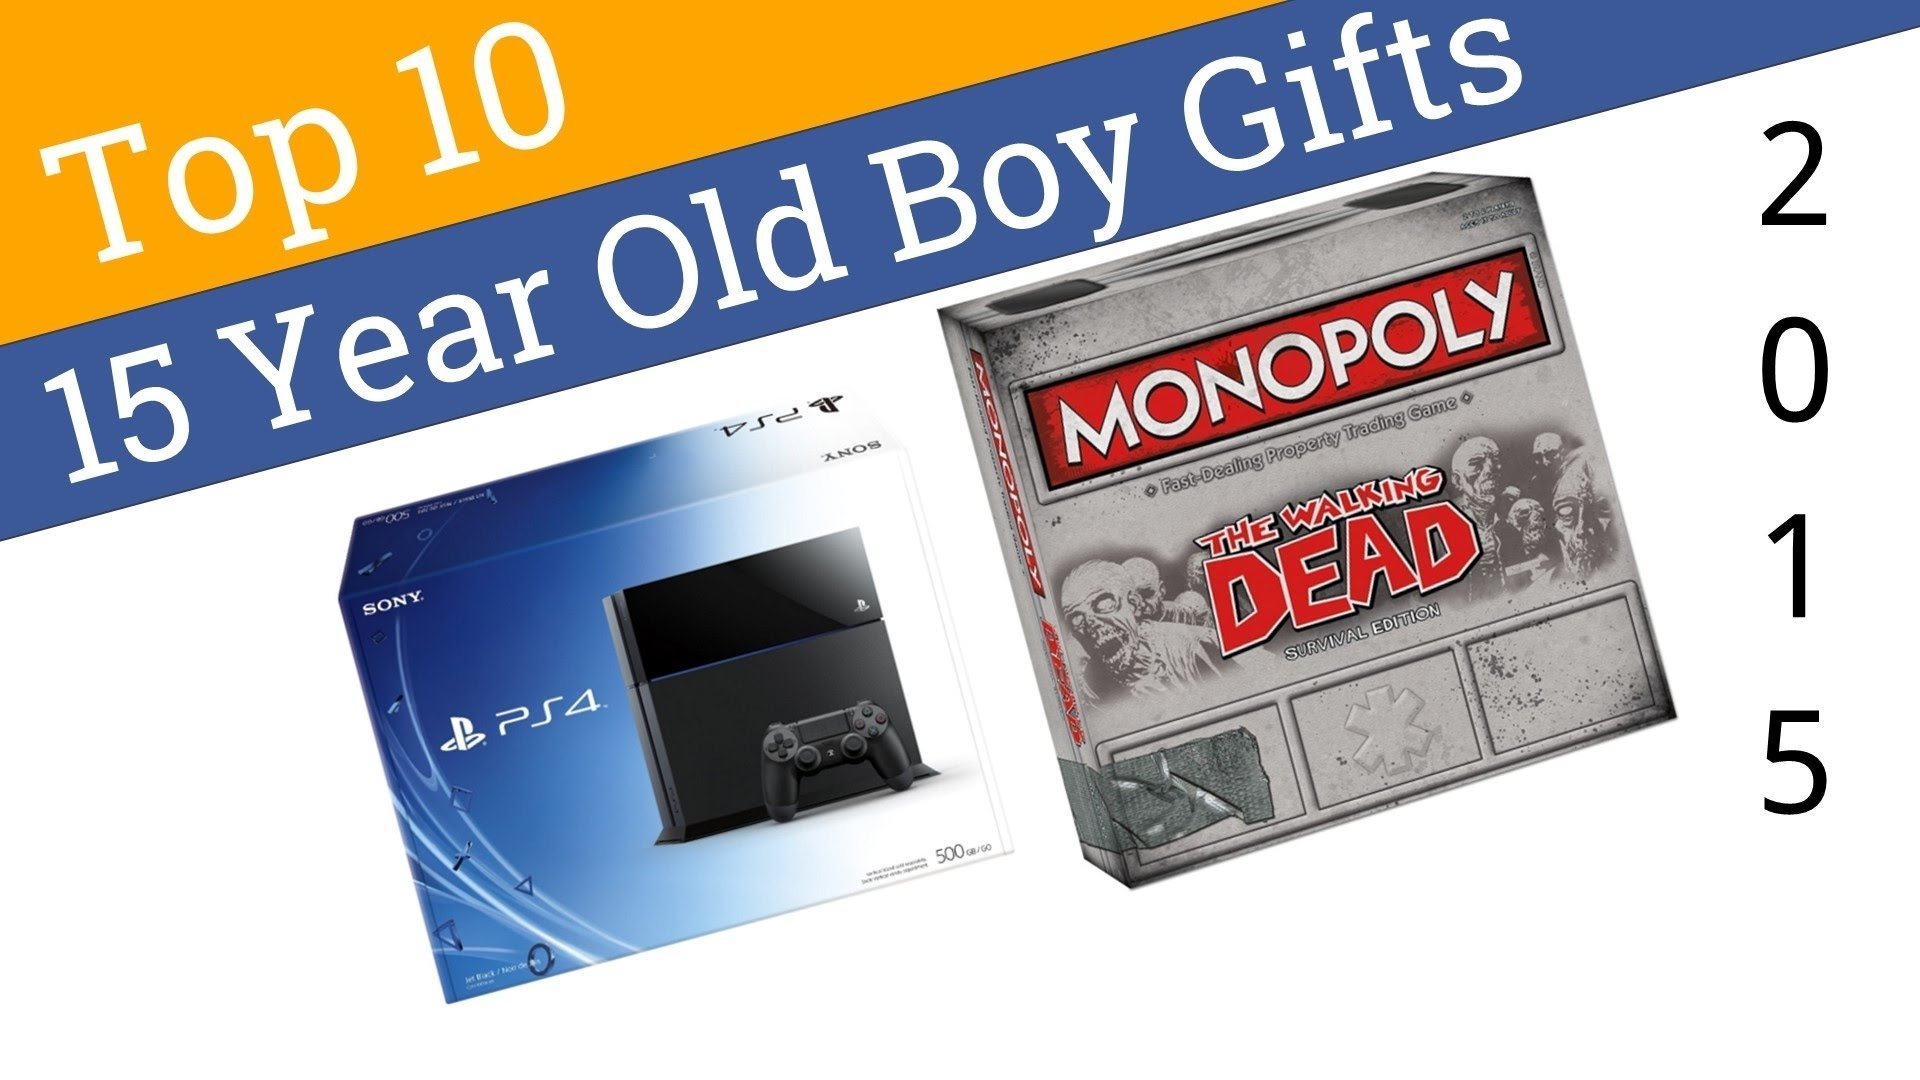 10 Nice Gift Ideas For 15 Year Old Boys download christmas gift ideas for 15 year old boy e bit 1